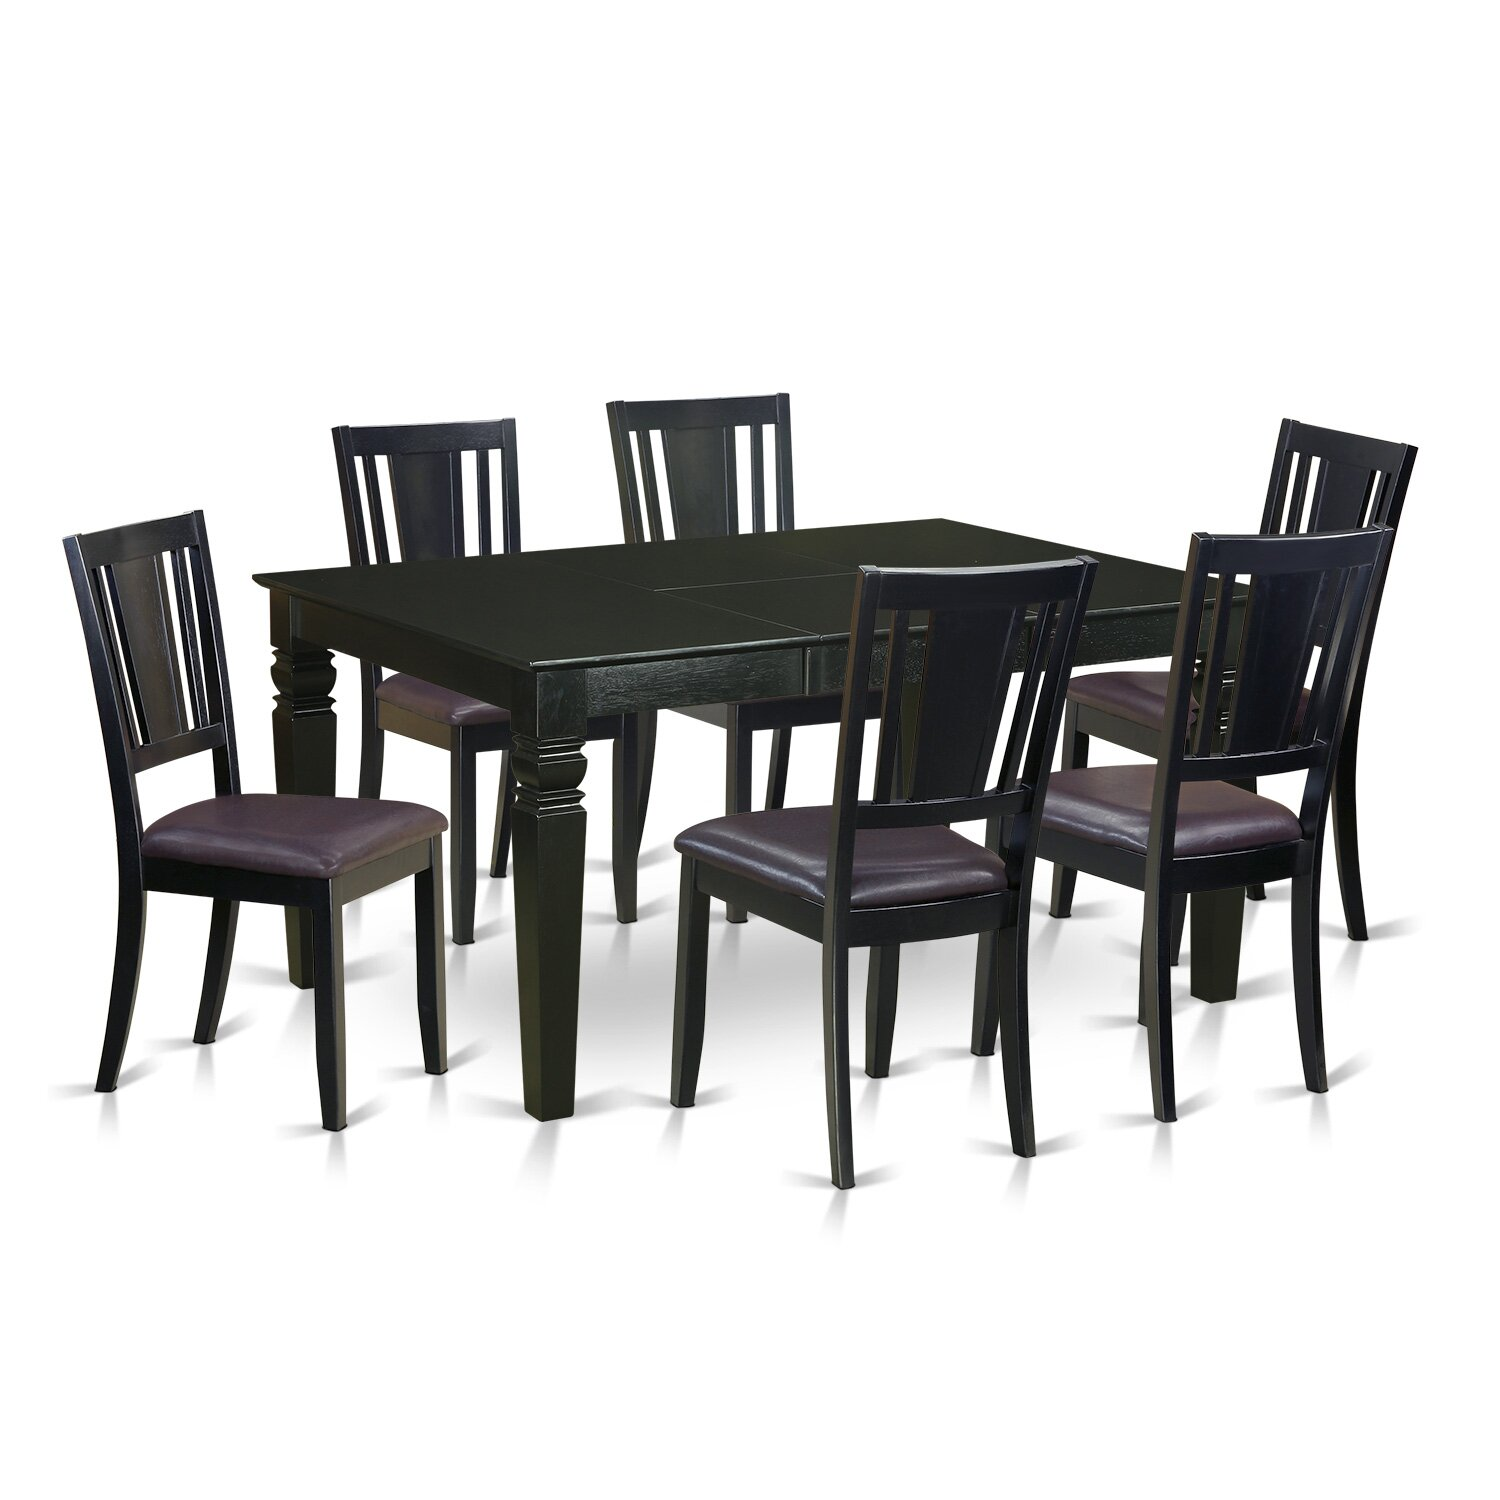 Wooden importers weston 7 piece dining set wayfair for 7 piece dining set with bench